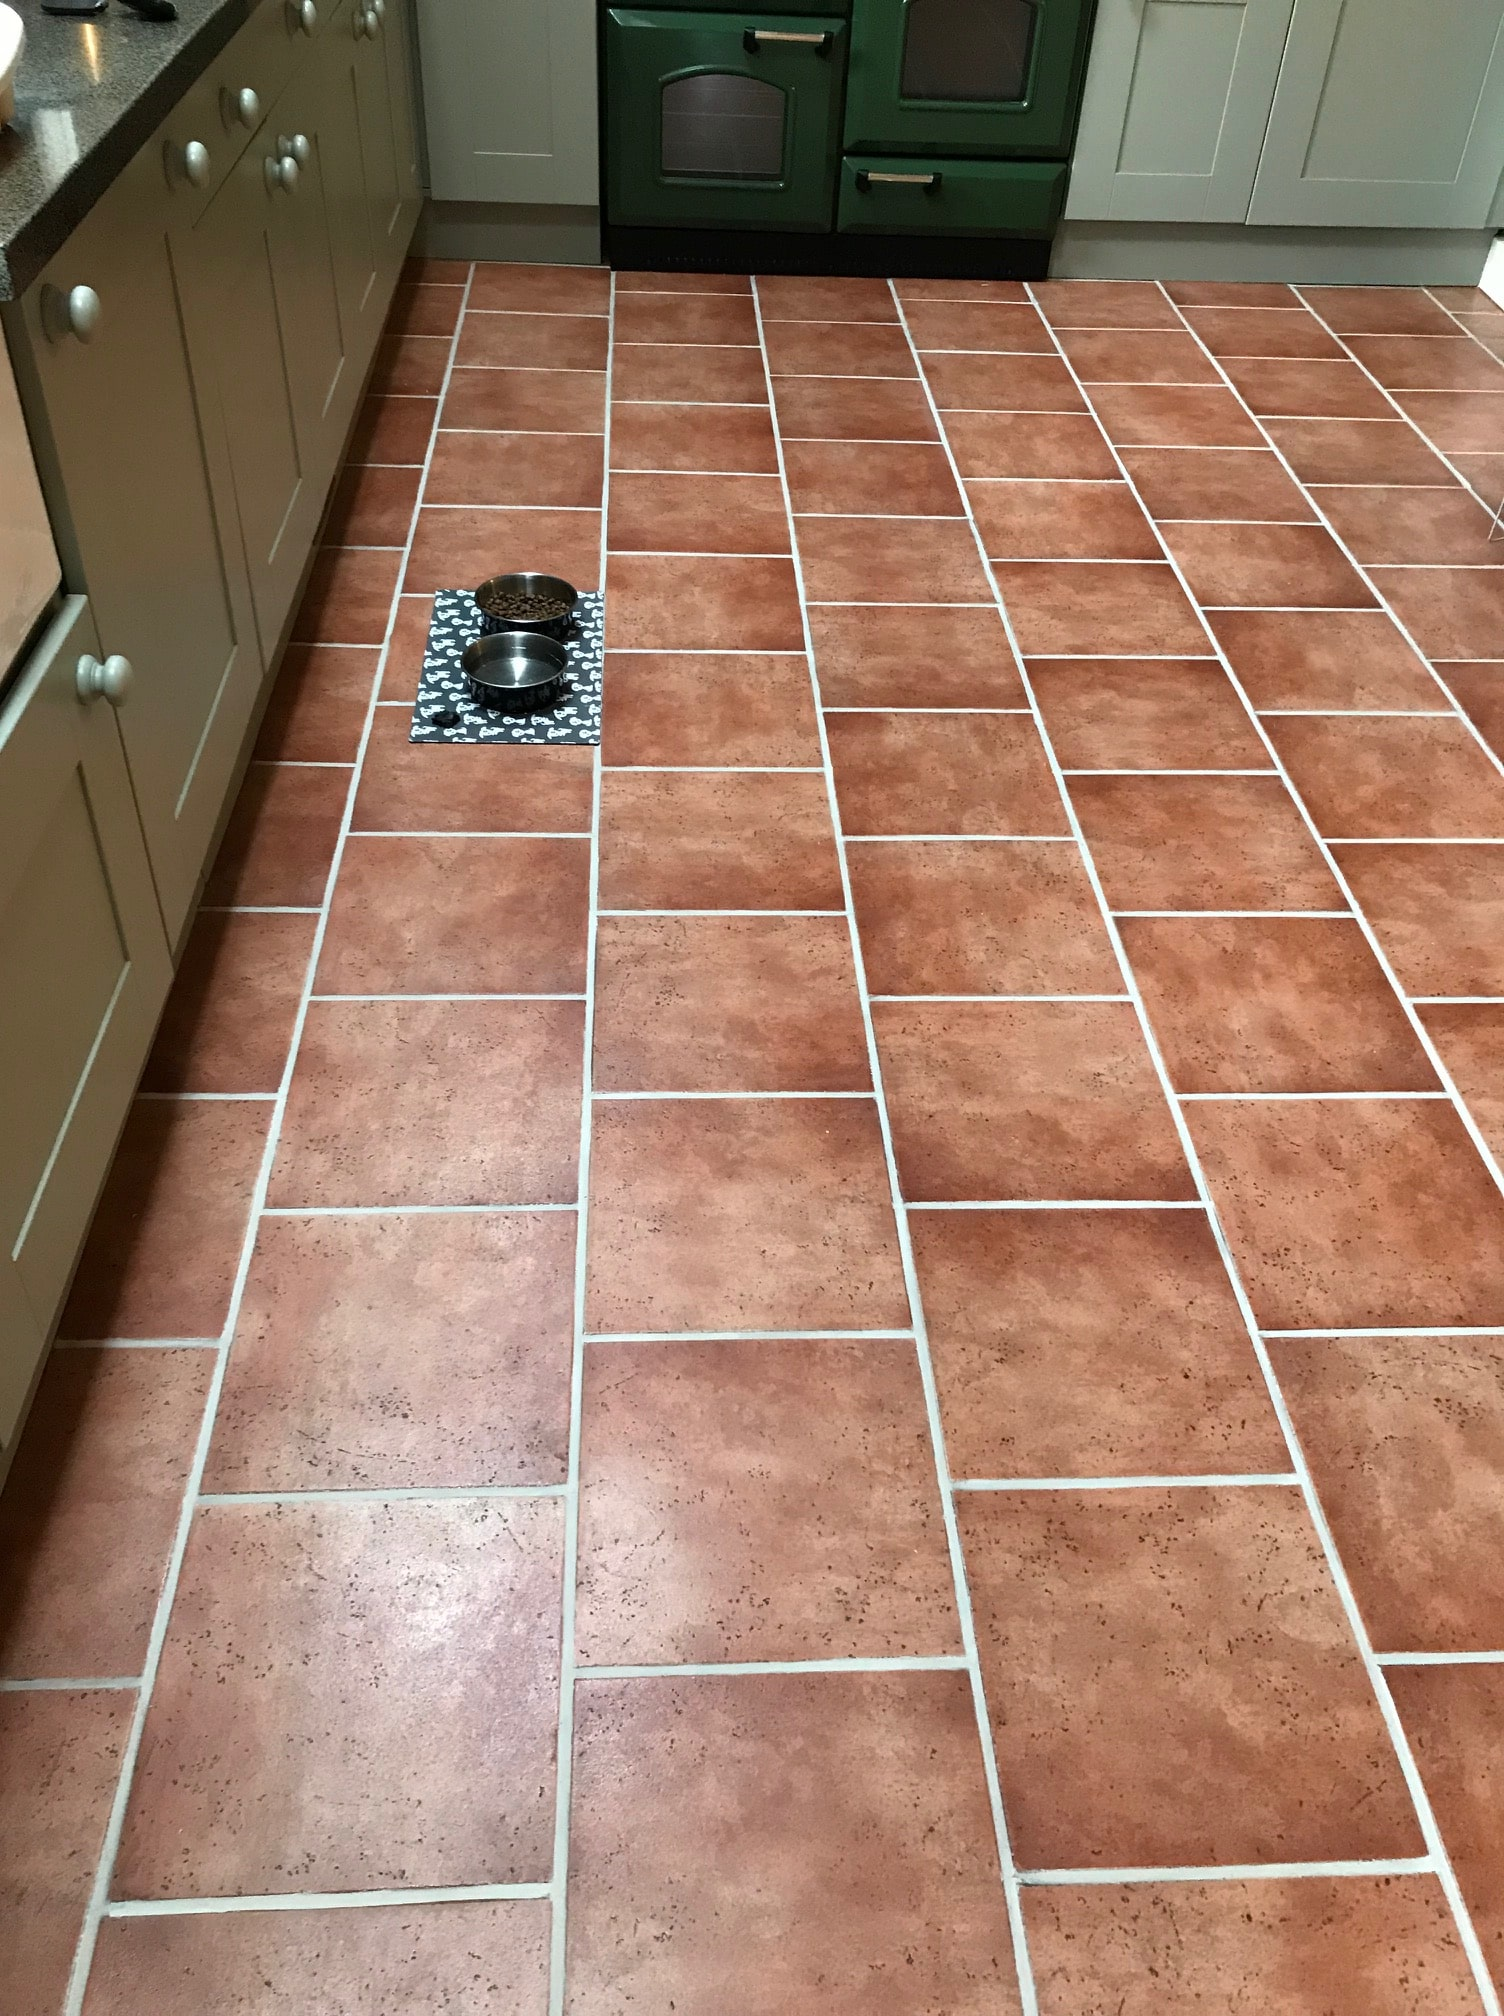 Restoring The Appearance Of A Ceramic Tiled Kitchen Floor In Ulverston Ceramic Tile Maintenance Tips